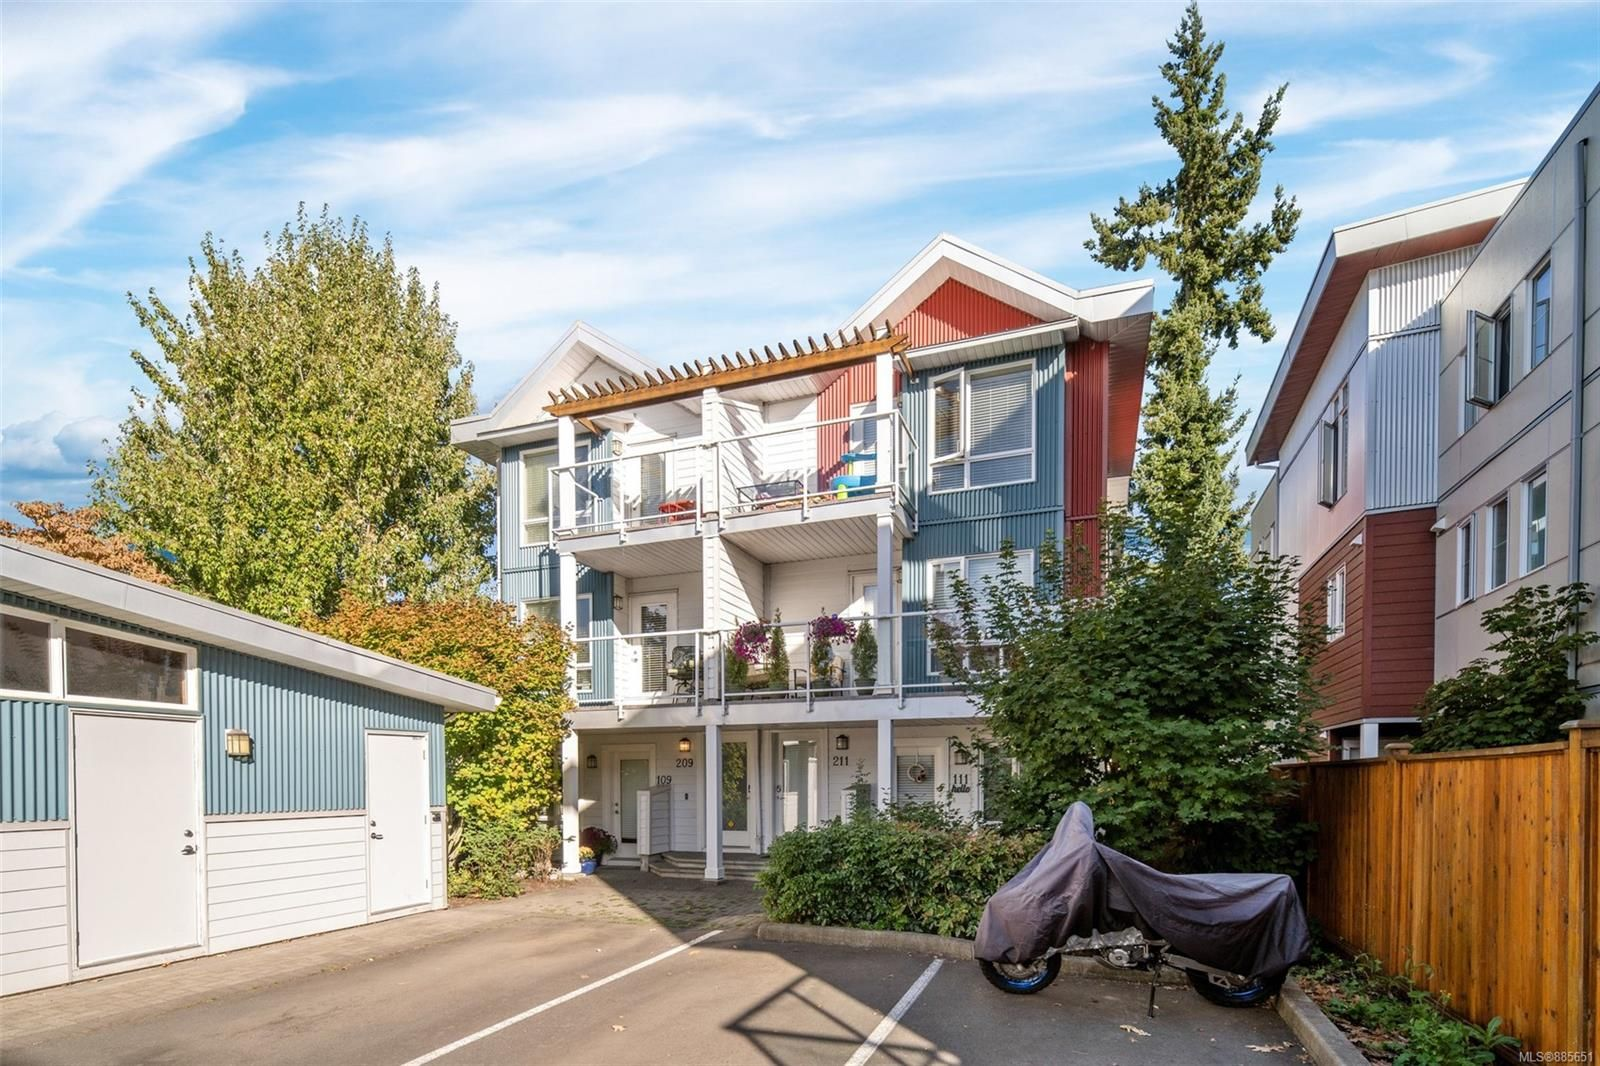 Main Photo: 209 2731 Jacklin Rd in : La Langford Proper Row/Townhouse for sale (Langford)  : MLS®# 885651